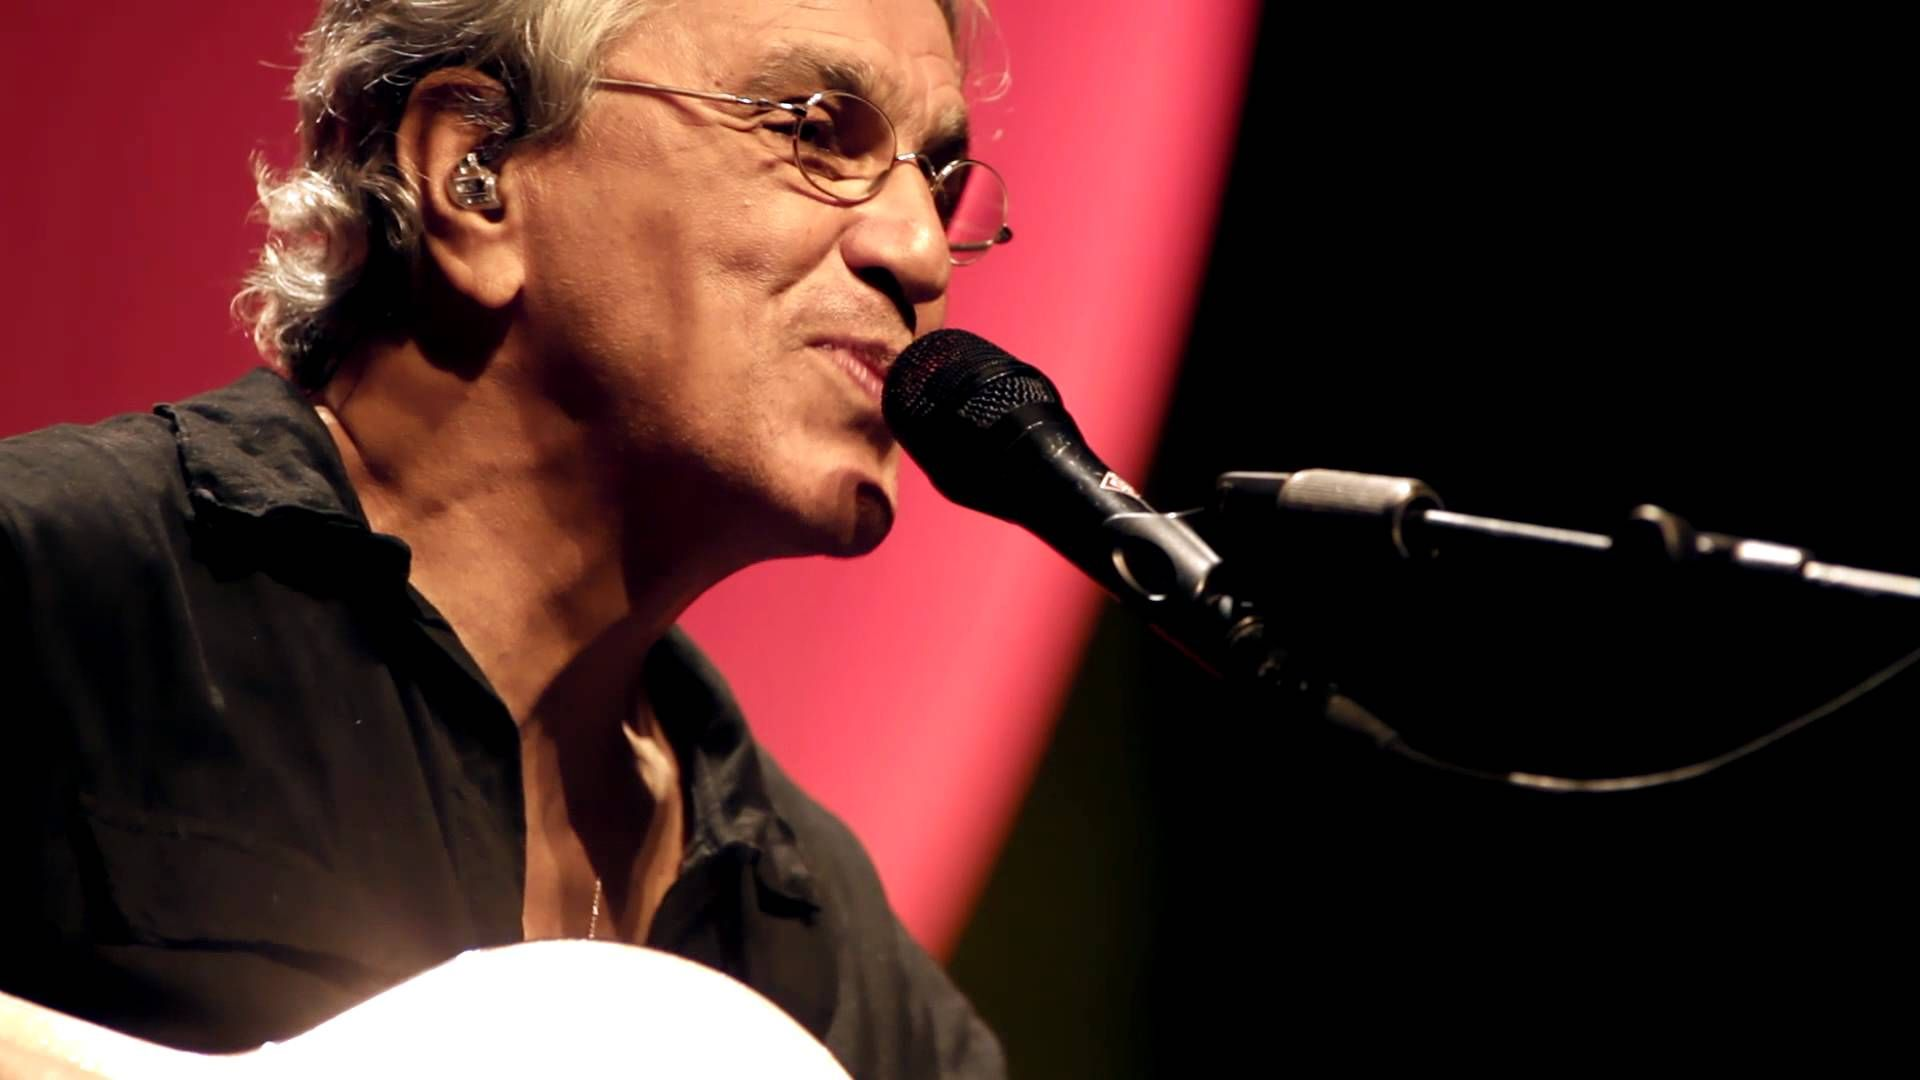 Menino Do Rio Caetano Veloso And Maria Gadu Nice To Meet